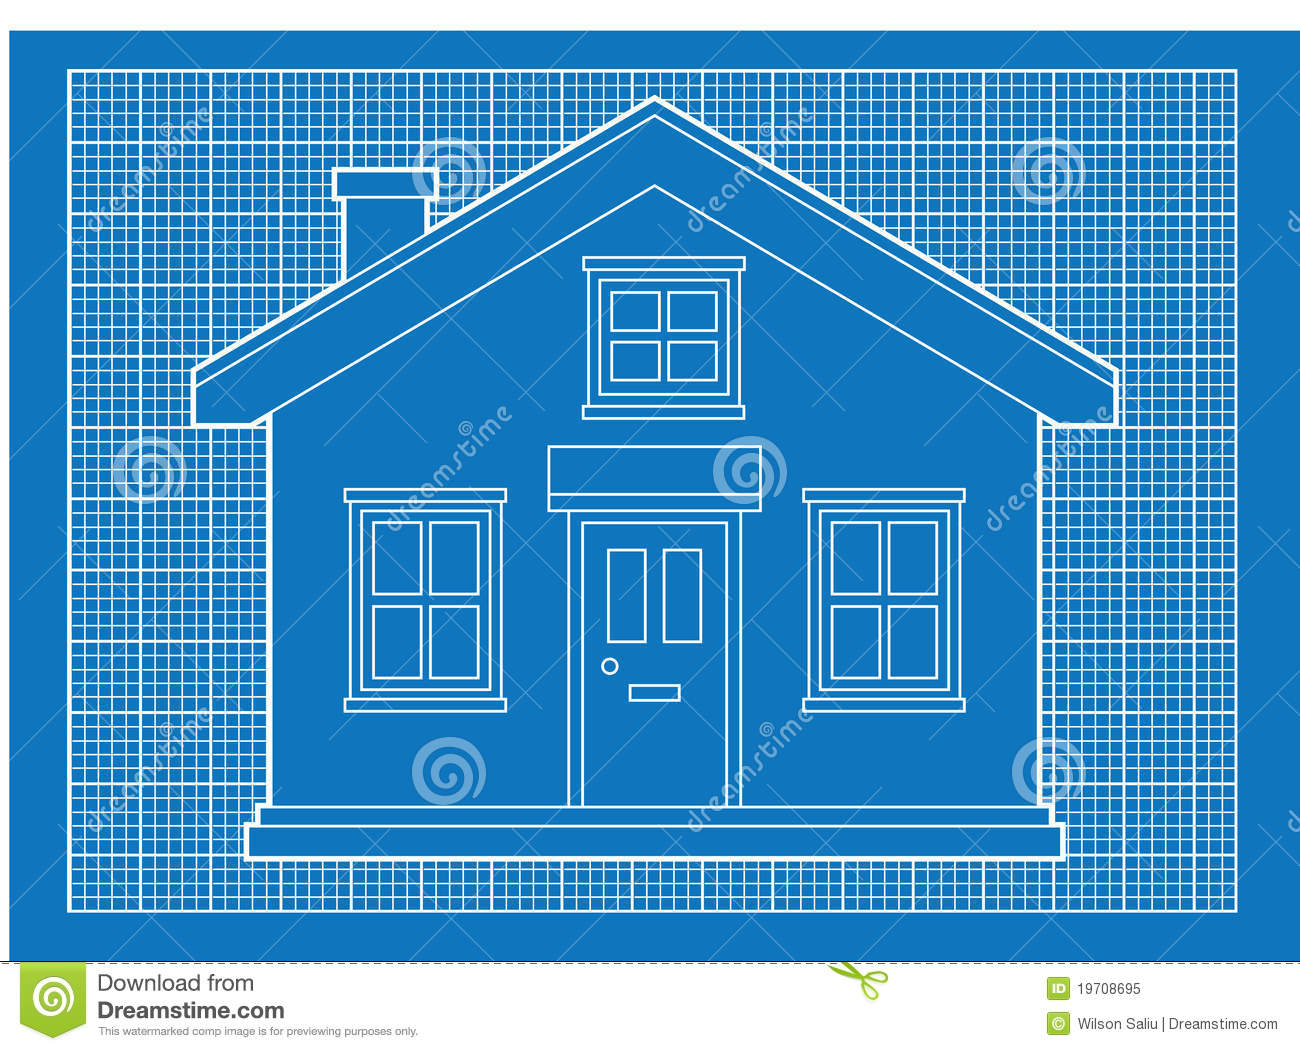 Simple house blueprints stock vector illustration of apartment simple house blueprints malvernweather